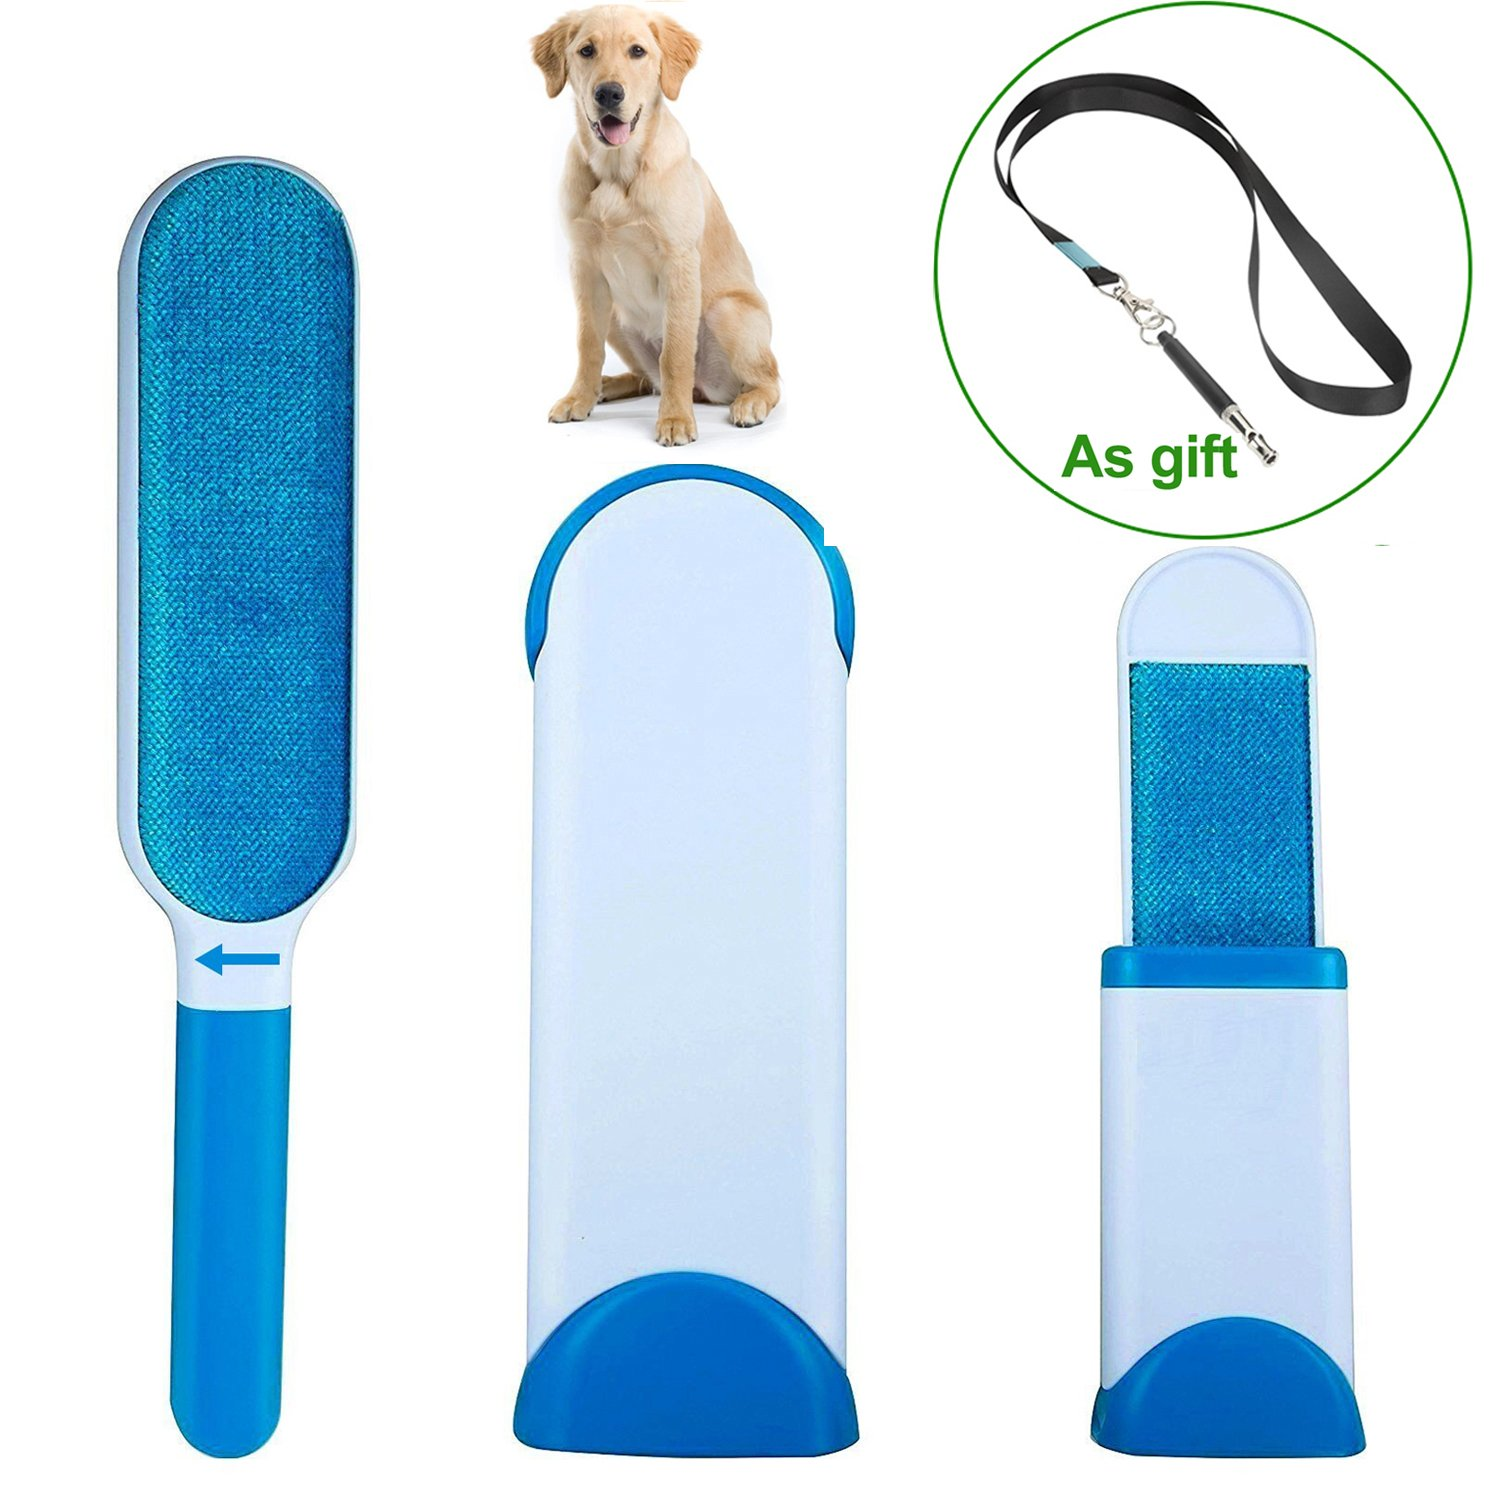 Pet Fur Lint Remover & Dog Whistle ,Double Sided Sticky Lint Brush with Self Cleaning Base, Pet Hair Brush for Dogs and Cats Lint Removal from Fabric, Cloth, Sofa and Furniture by Tonifa